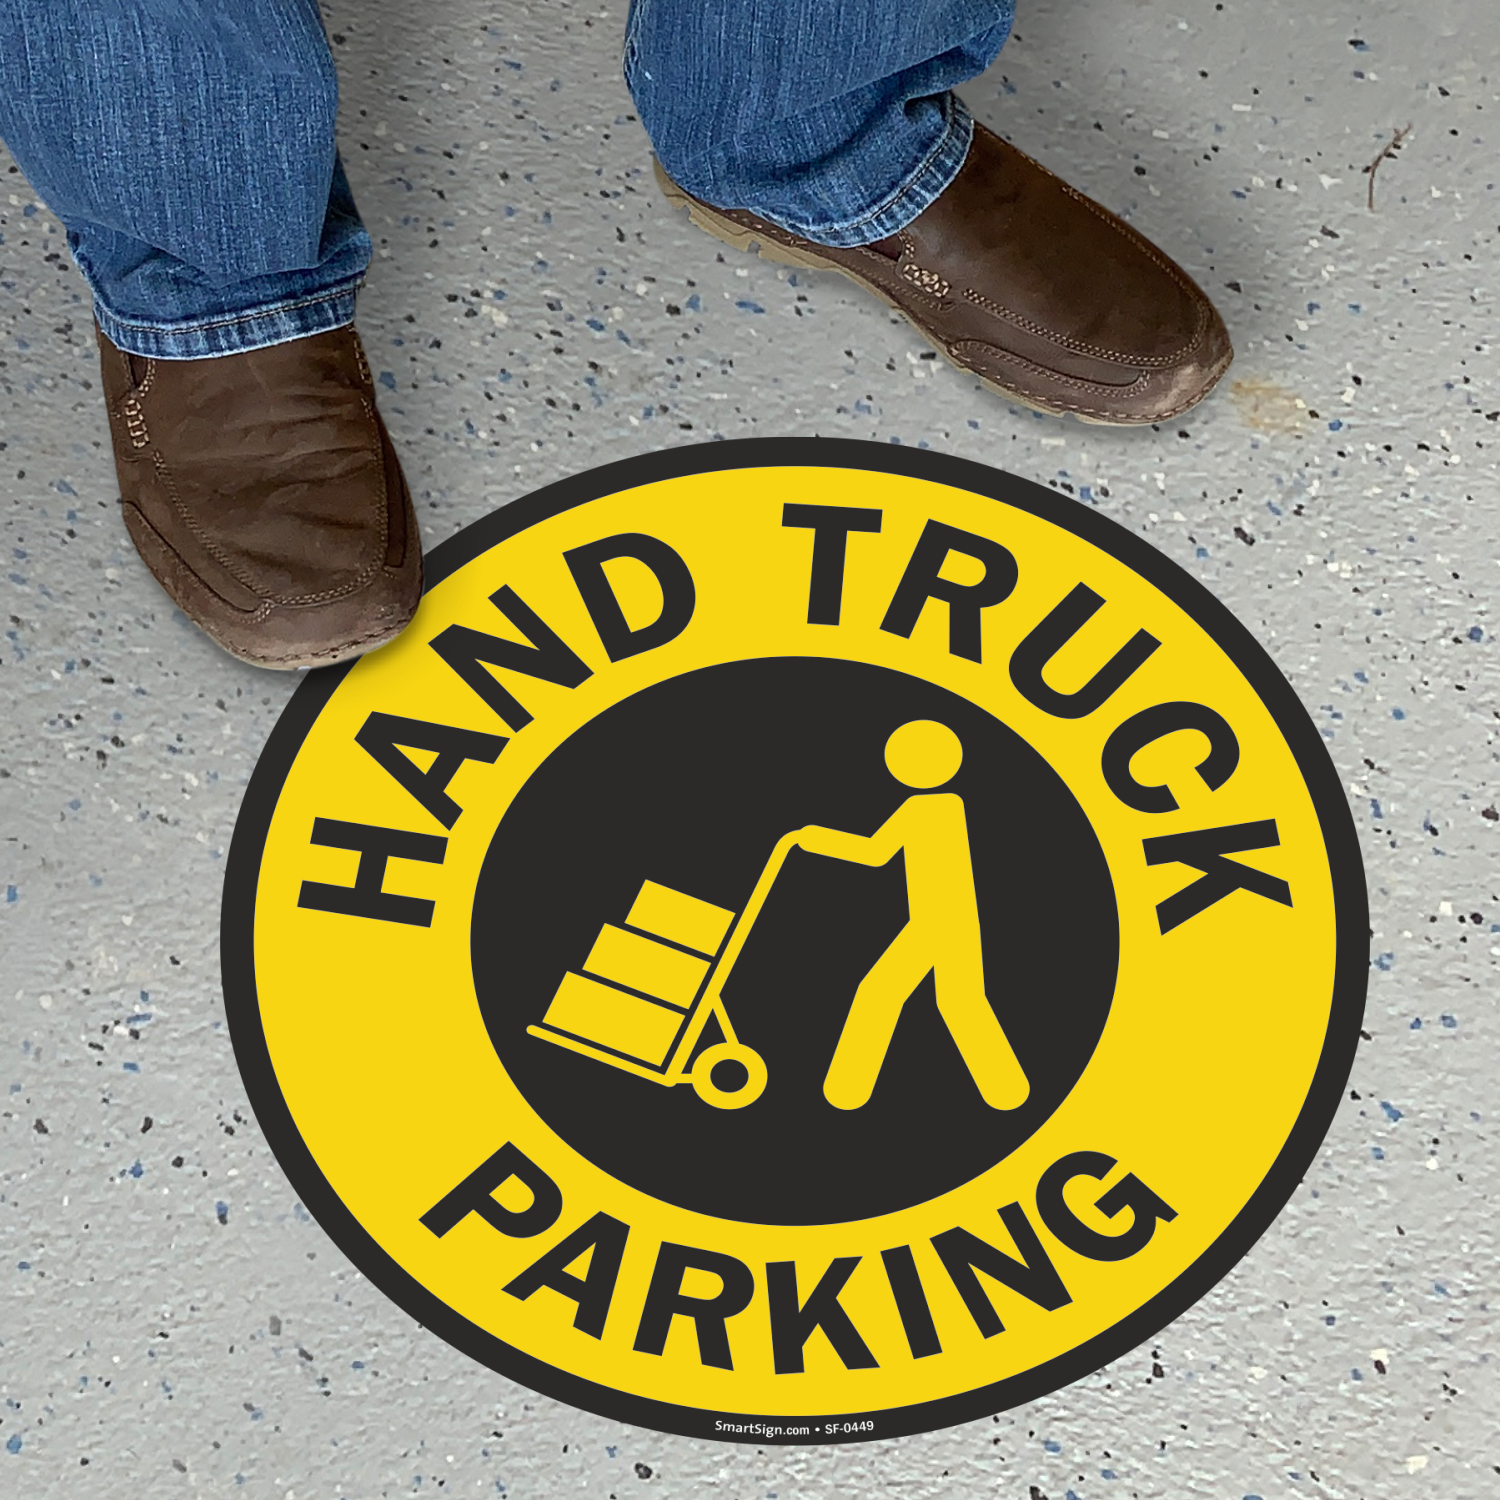 Hand Truck Parking Floor Sign